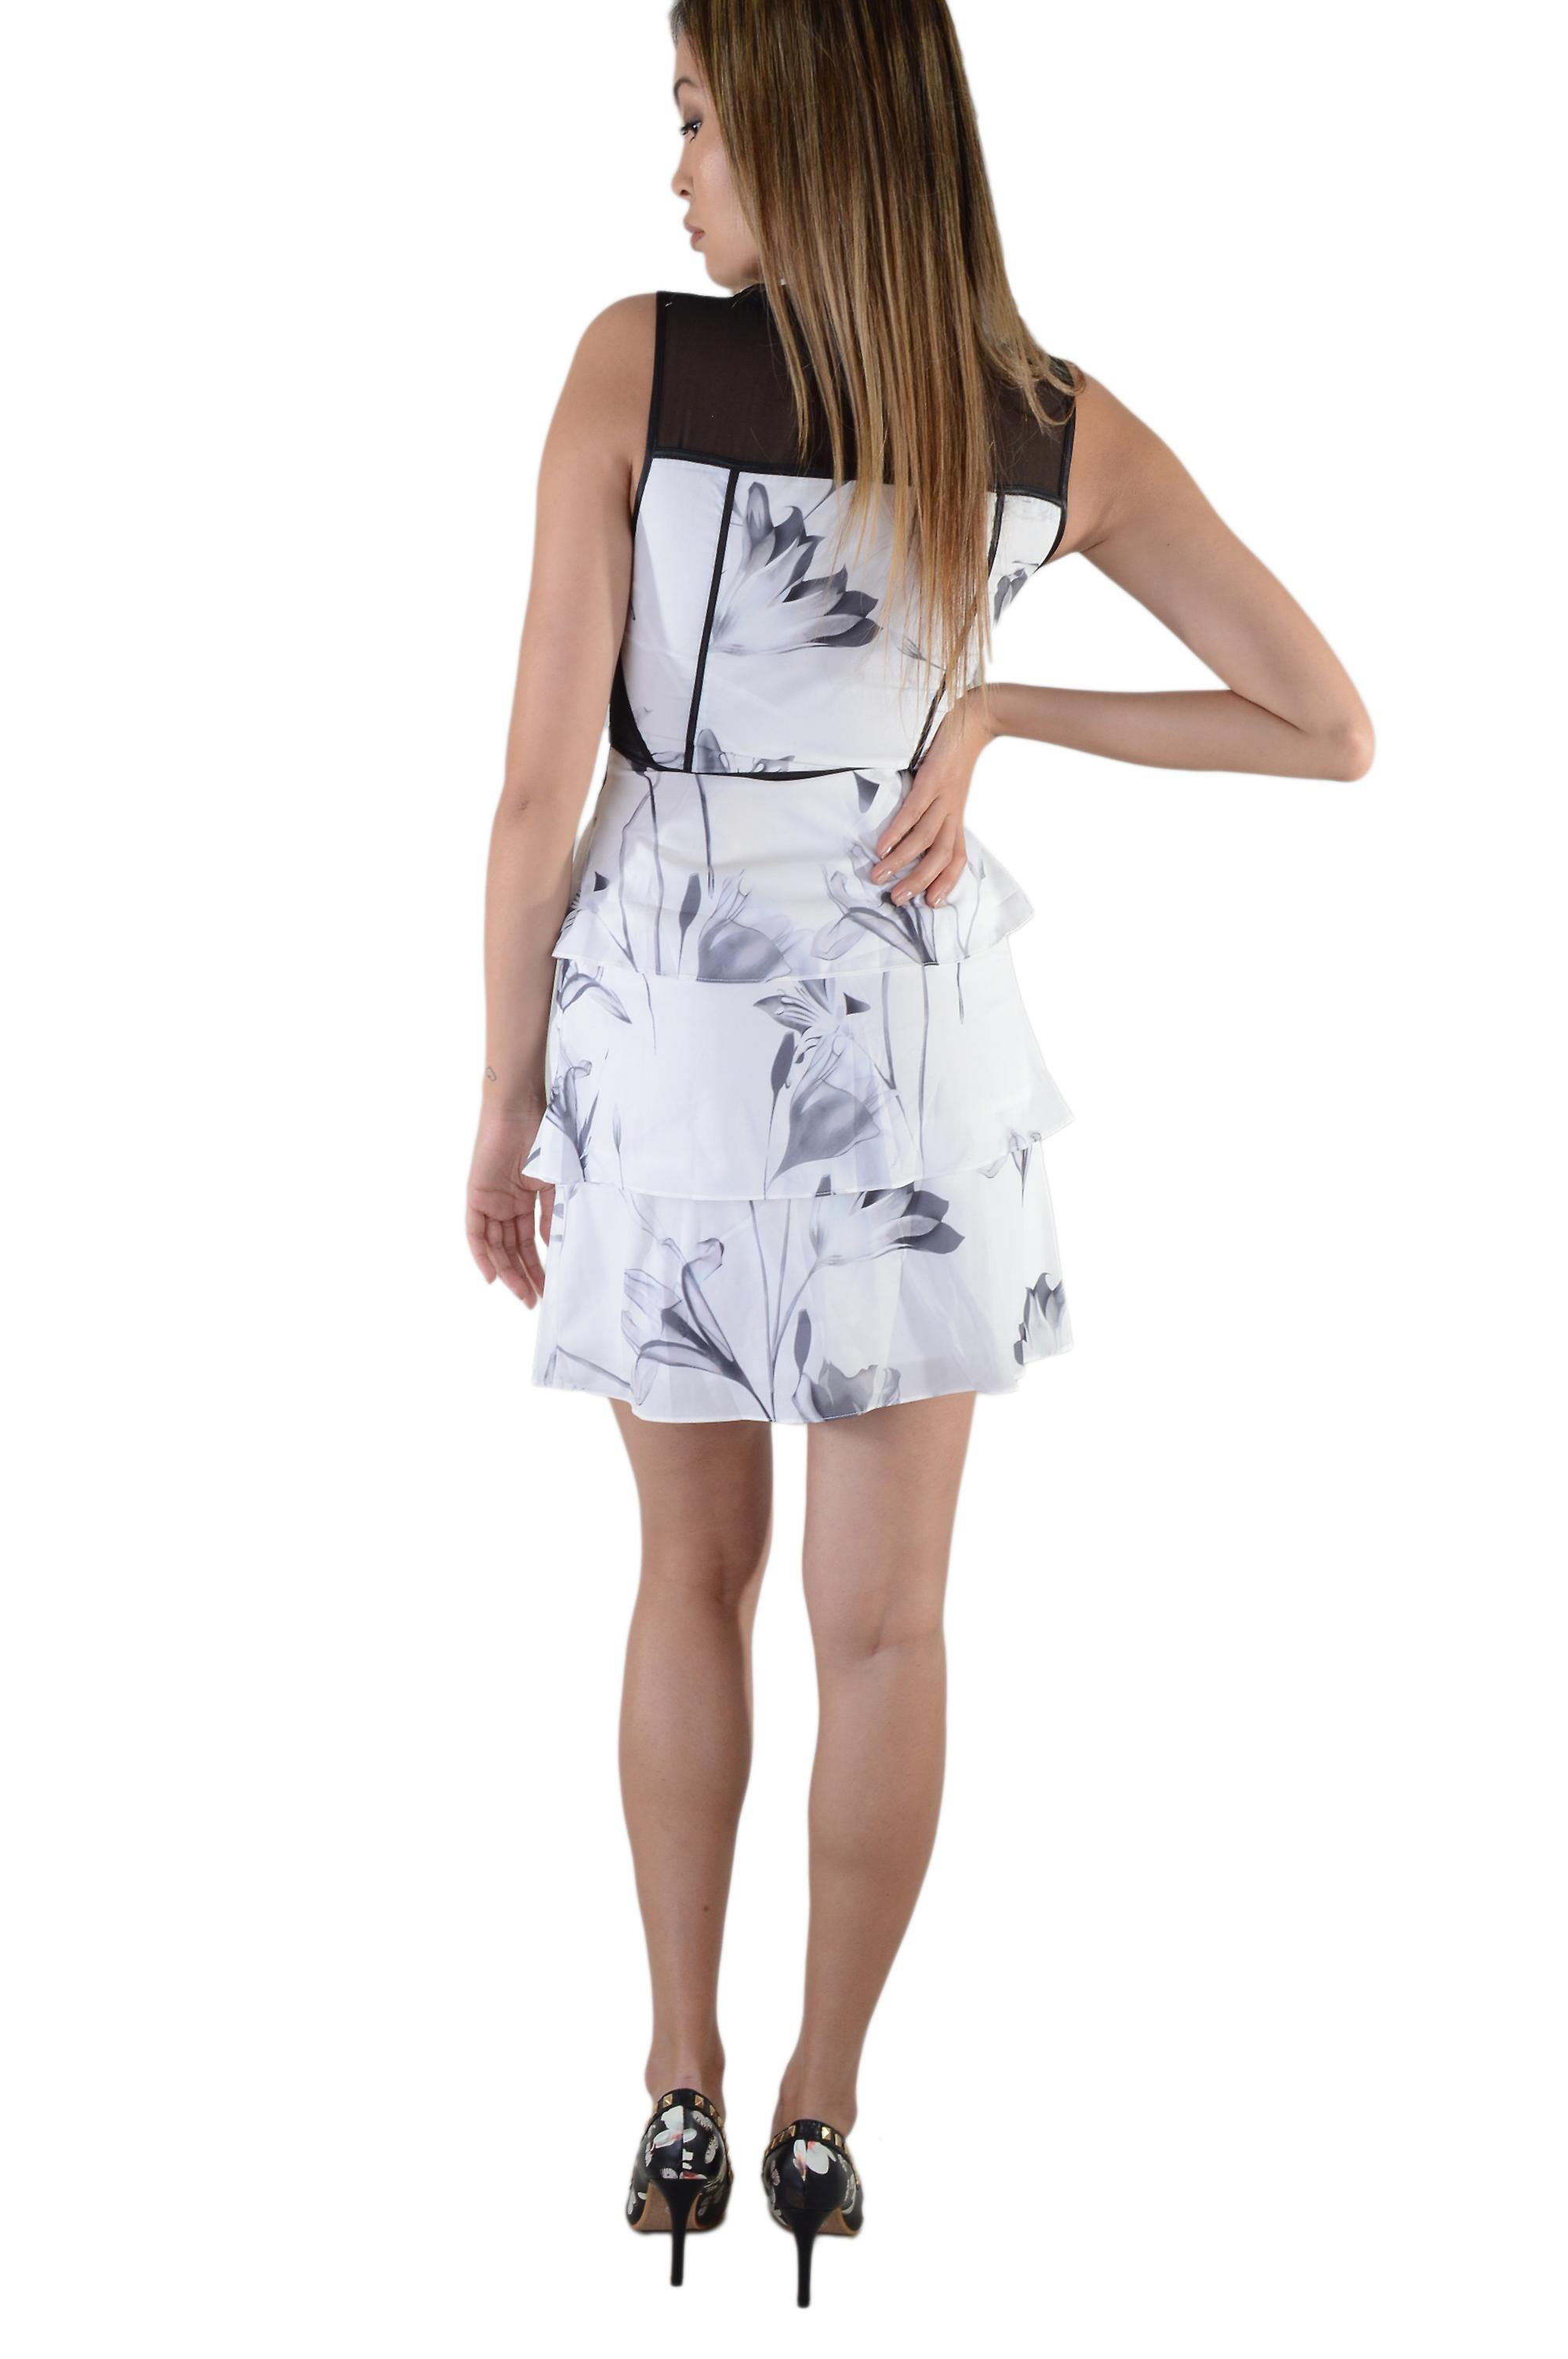 LMS White Floral Print Peplum Dress With Mesh Inserts